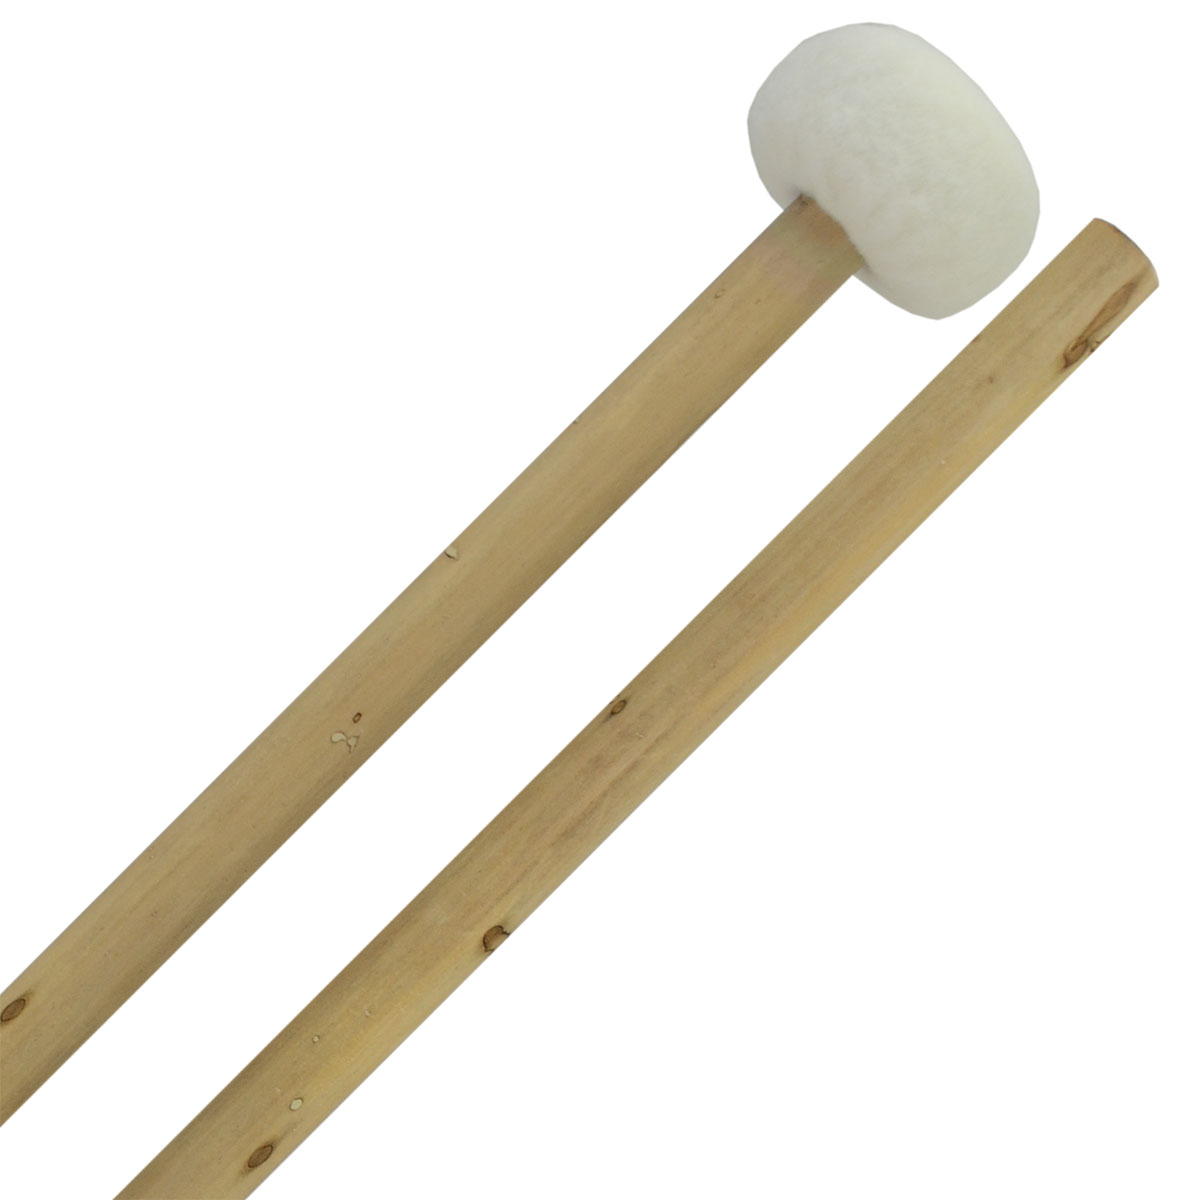 Clevelander Large Classic Ball Timpani Mallets, Bamboo Handle